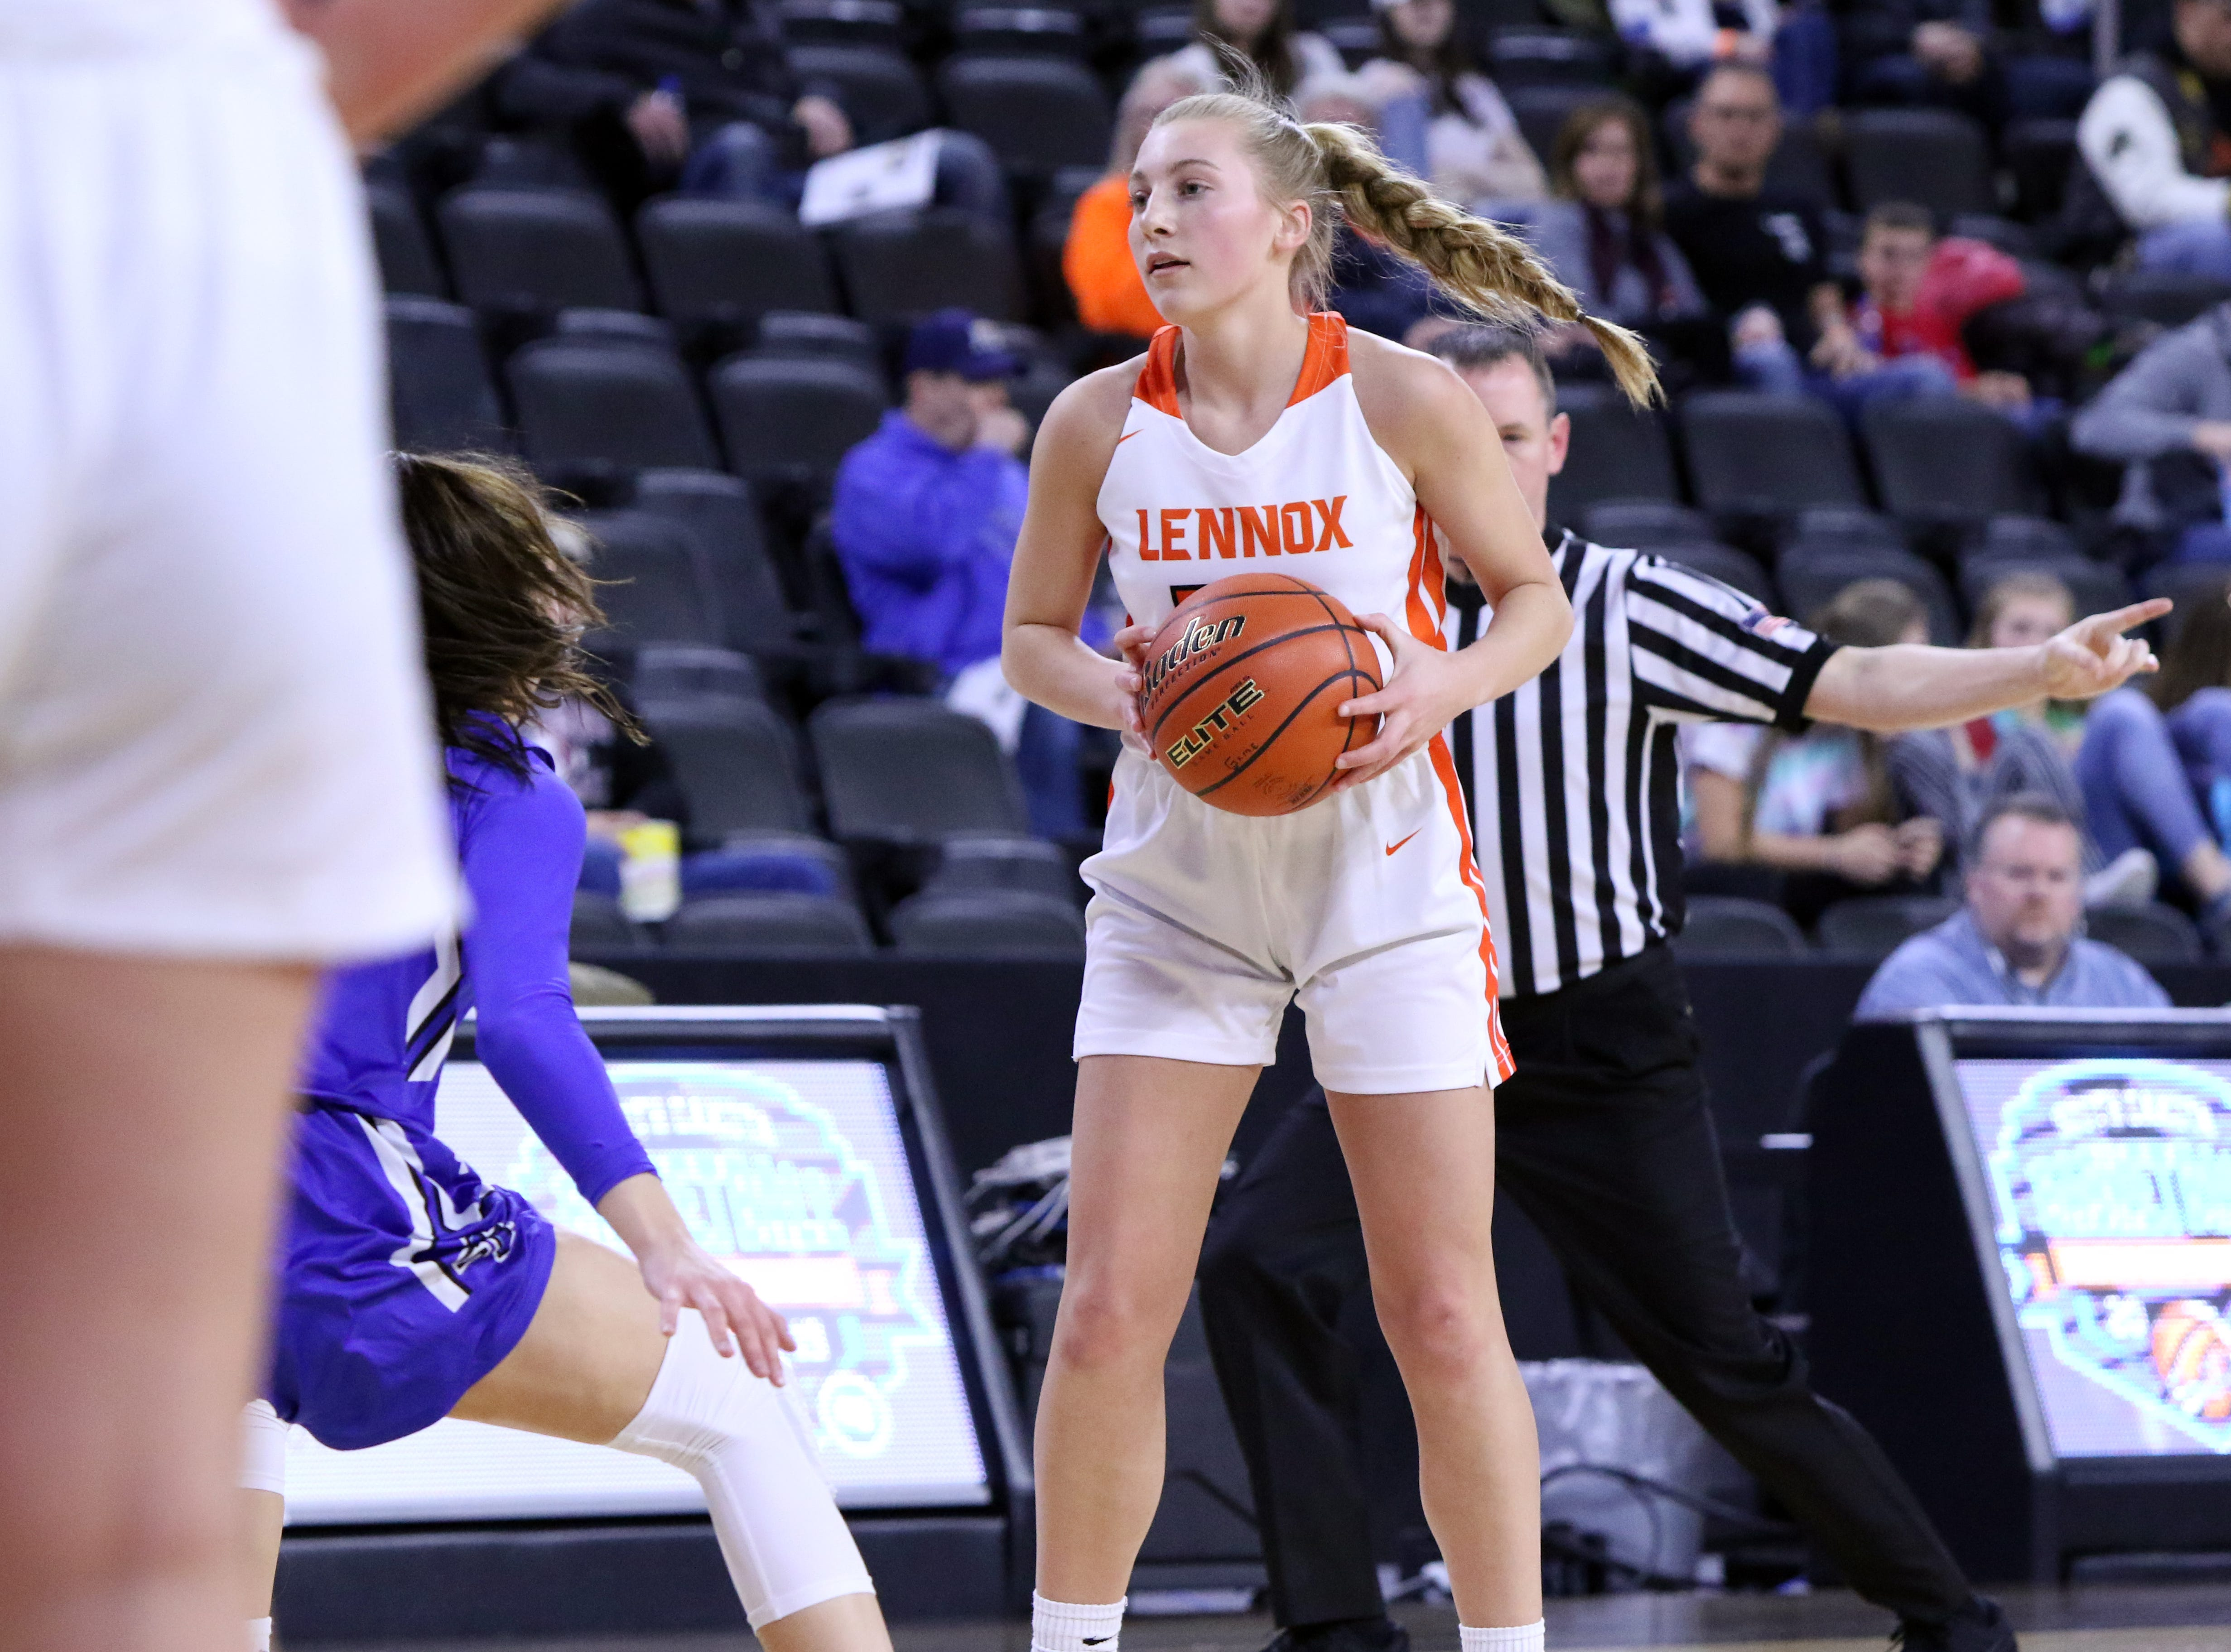 Isabel Ihnen of Lennox looks for an open teammate during Thursday's game against St Thomas More at the Premier Center in Sioux Falls.